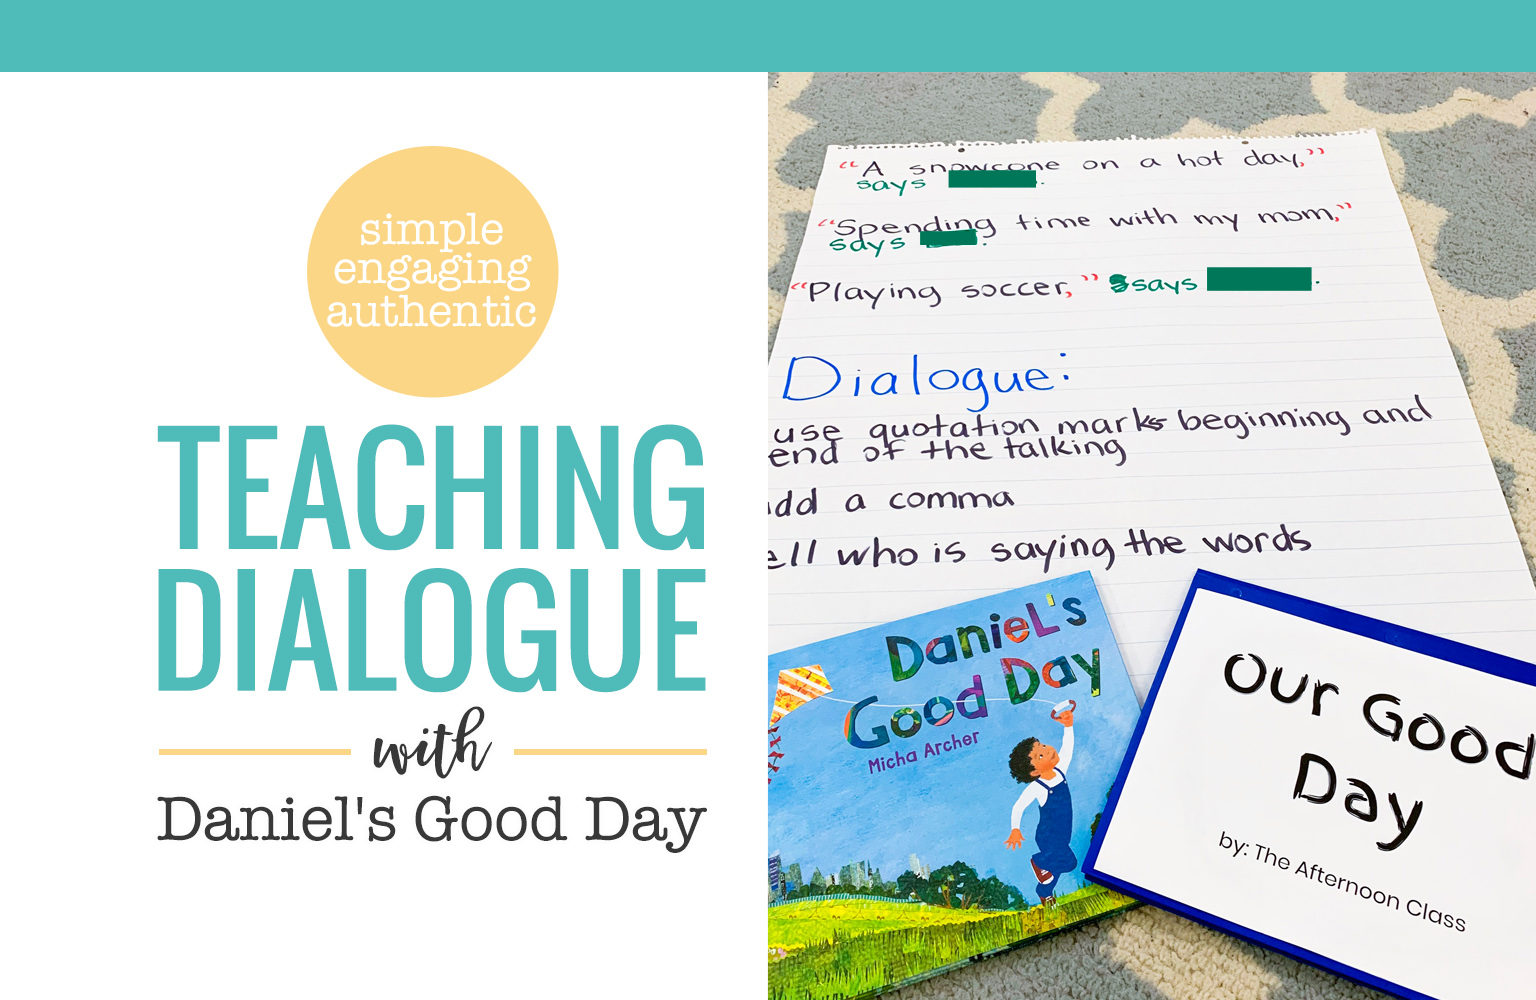 Teach dialogue and make a class with Daniel's Good Day by Micha Archer. Create a dialogue anchor chart of the work writers do and then download the template to have students make their own class book.